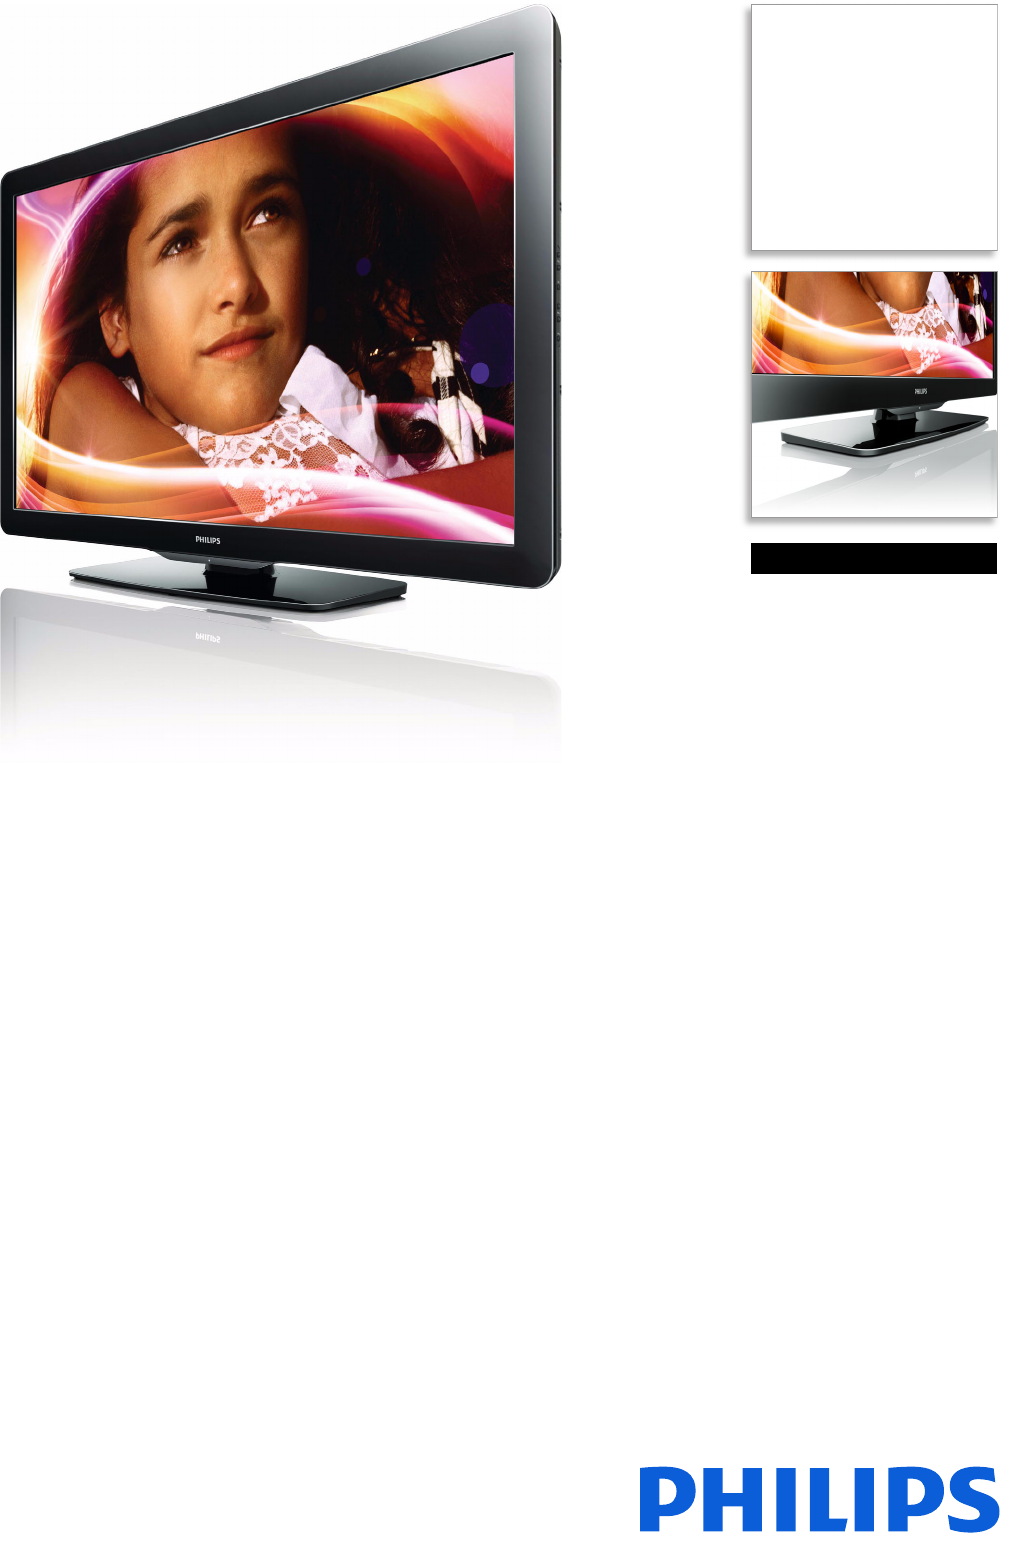 Philips 40HFL5783L/F7 Hospitality LCD TV User Manual Leaflet